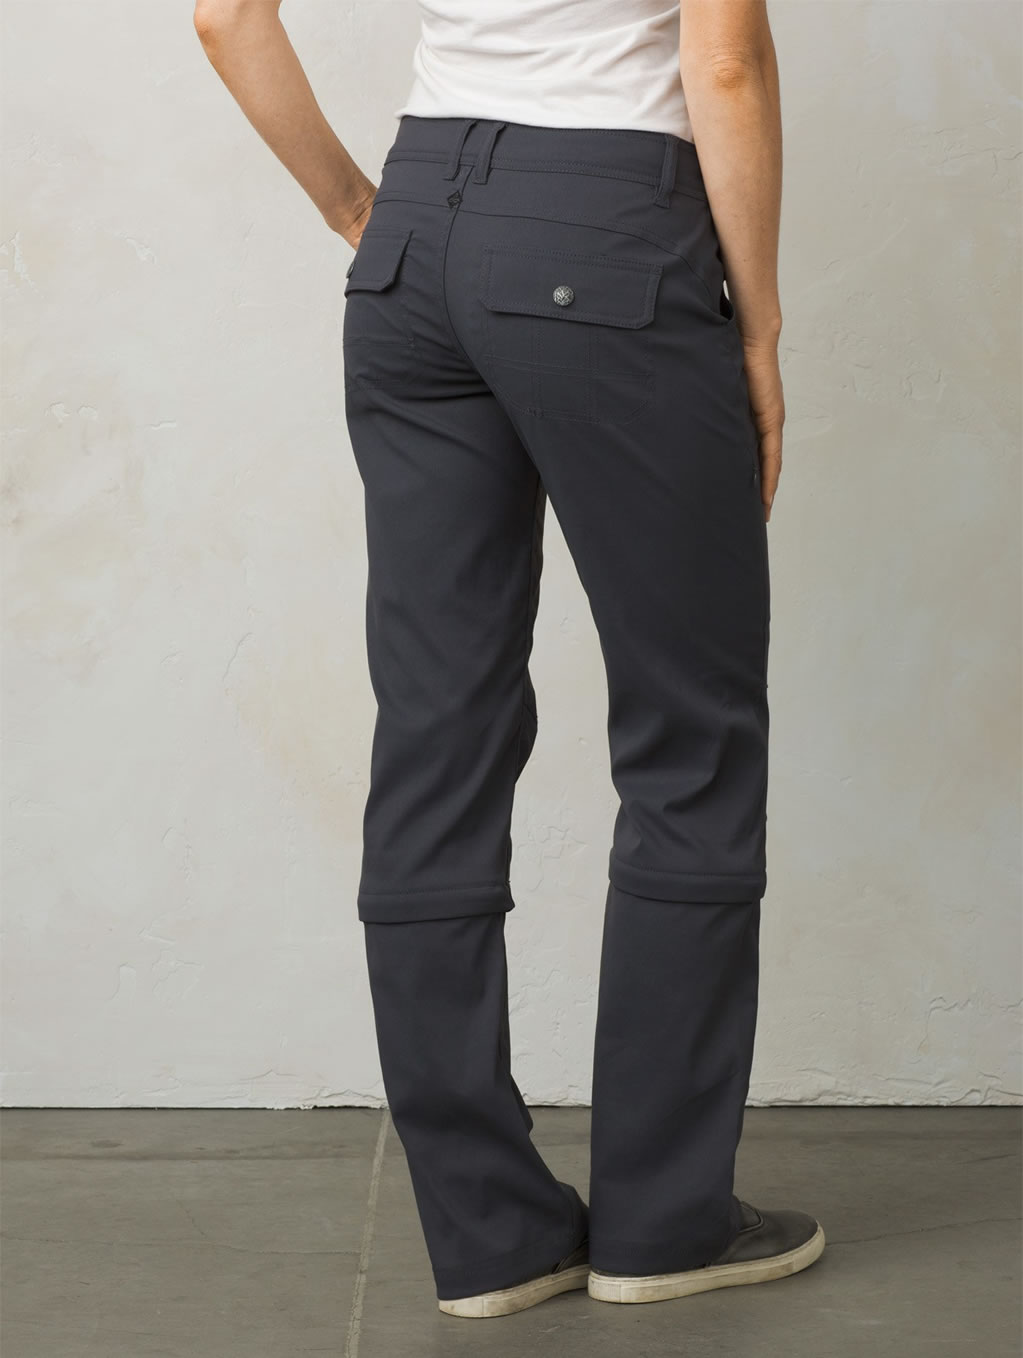 Women's Halle Convertible Pant by Prana, Back